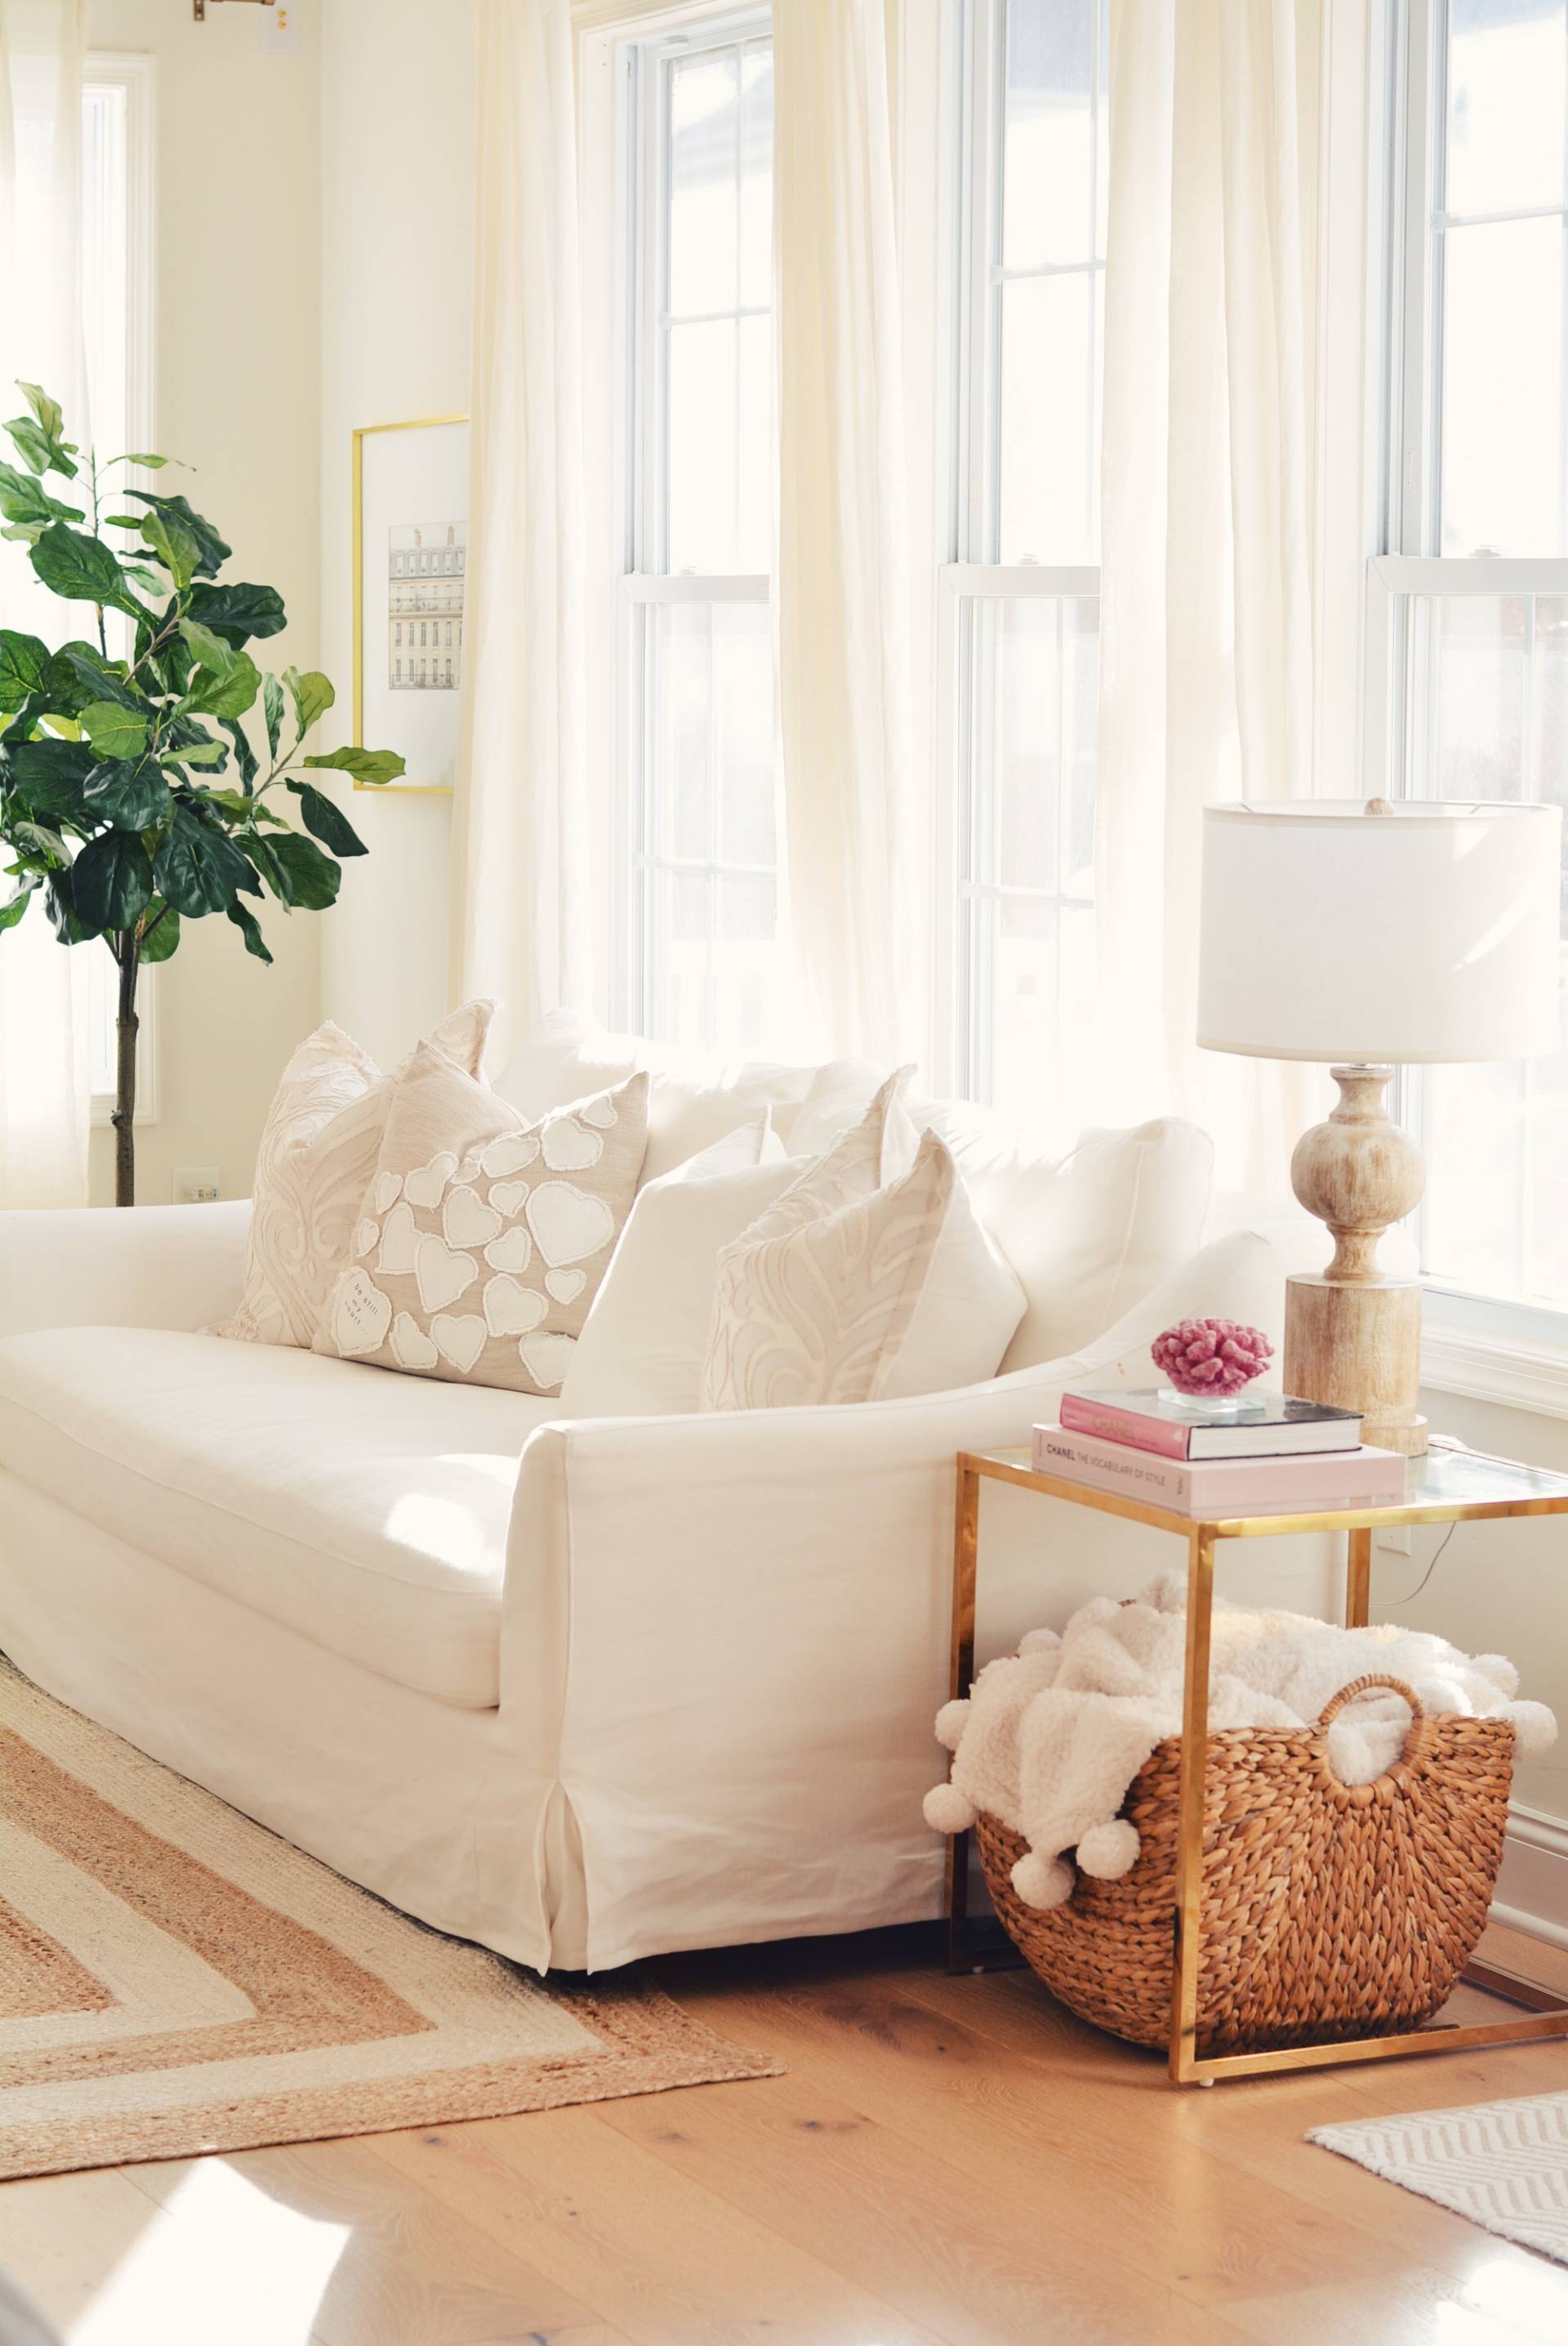 Slipcovers for ikea's färlöv armchair start at $149. The Ikea Farlov Sofa & Bemz Designs Covers Review - The ...